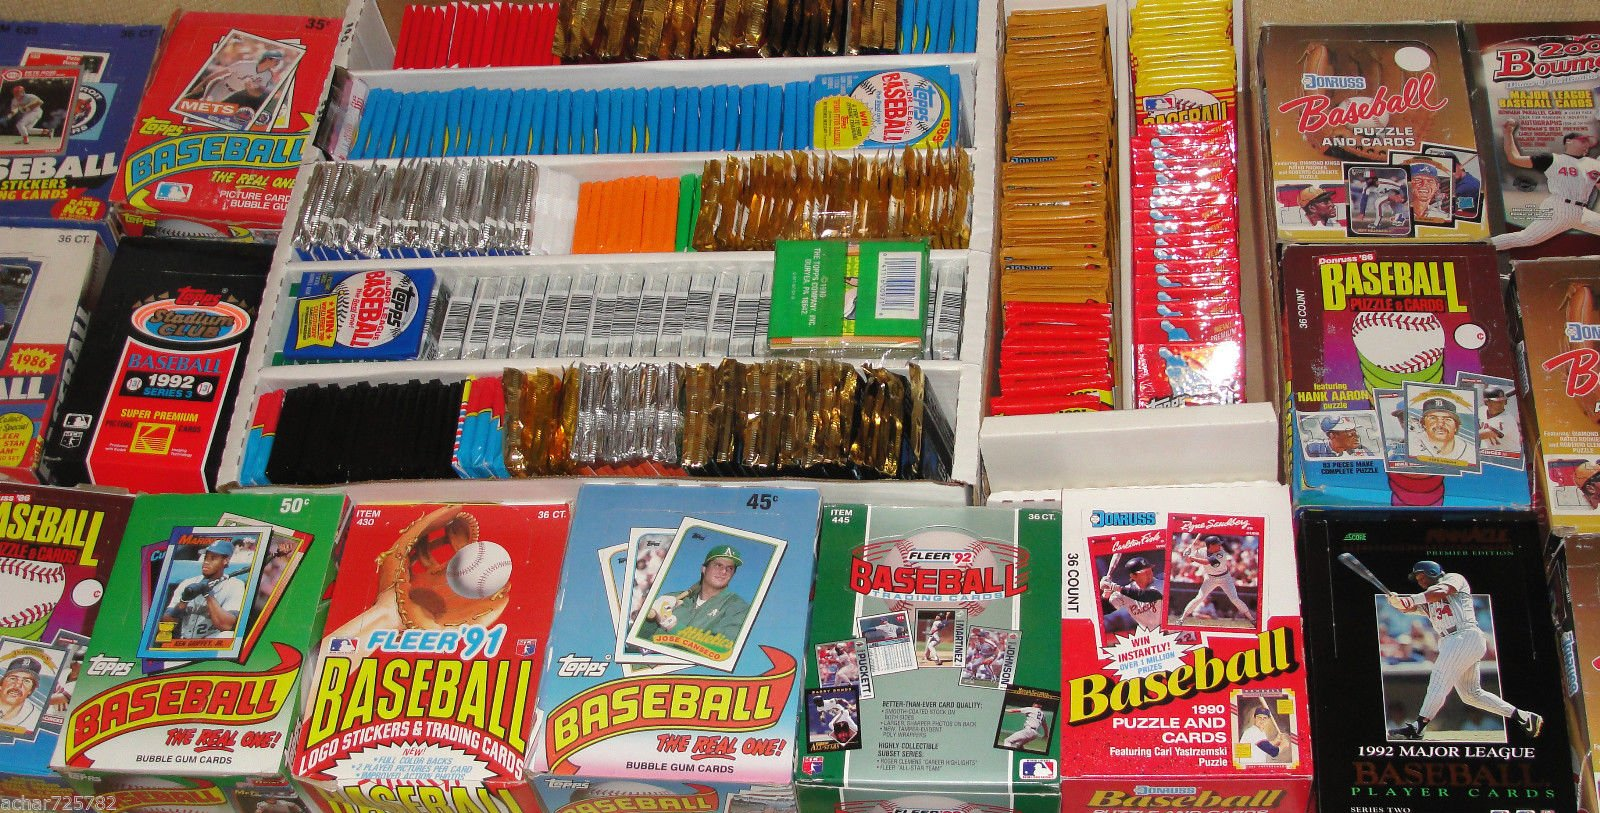 FACTORY SEALED PACK SALE! 100 OLD BASEBALL CARDS ~TOPPS ~ FLEER ~ DONRUSS ~ UPPER DECK ~ SCORE ~ STADIUM CLUB ~ O PEE CHEE ~ BOWMAN SEALED WAX PACKS ESTATE SALE WAREHOUSE FIND!